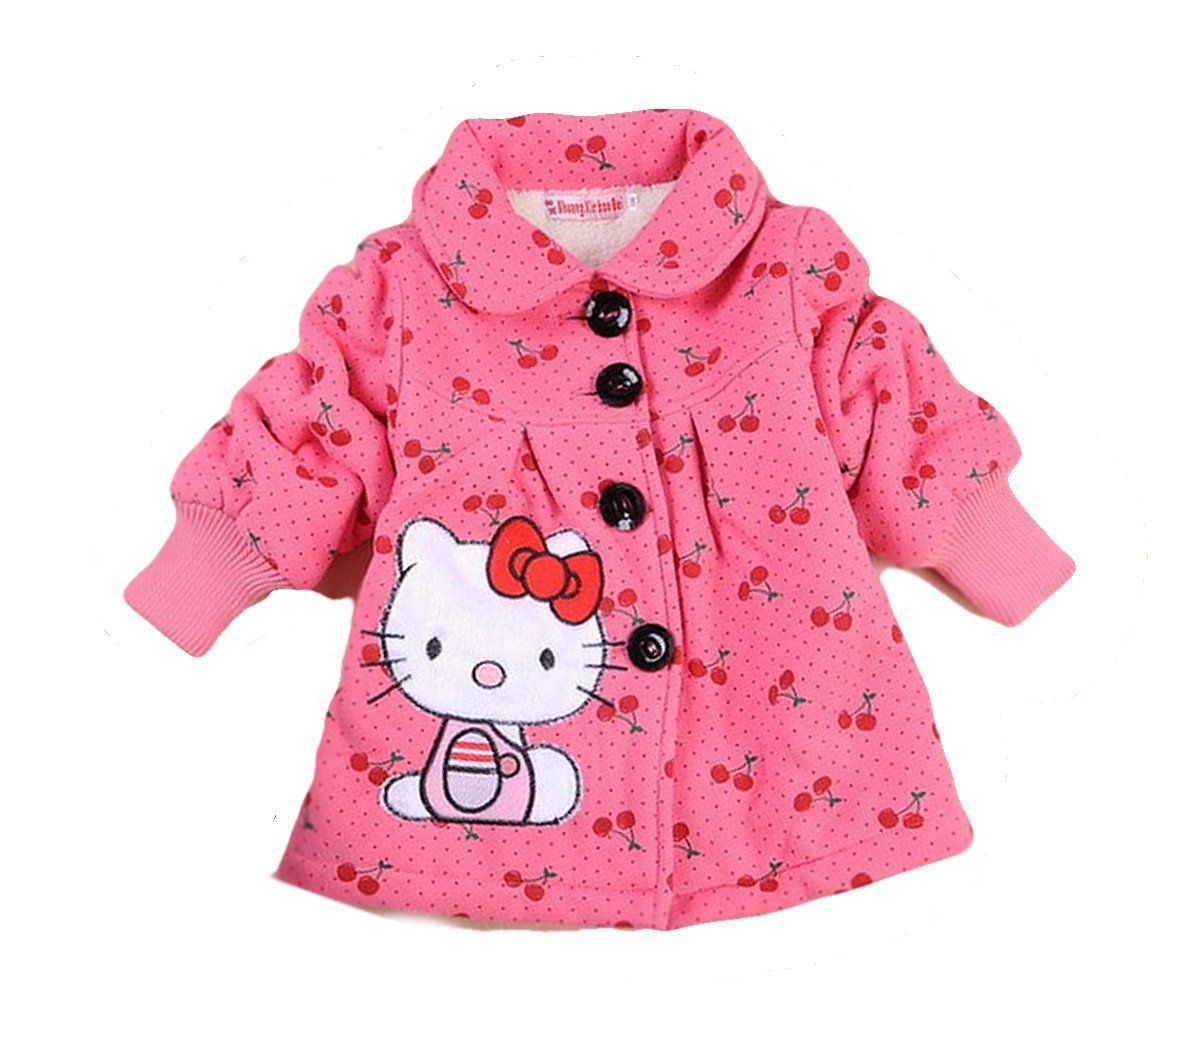 3dccfd8bf SOPO Hello Kitty Toddler Girls Winter Jacket 2-5Y Outerw Coat Pink ...